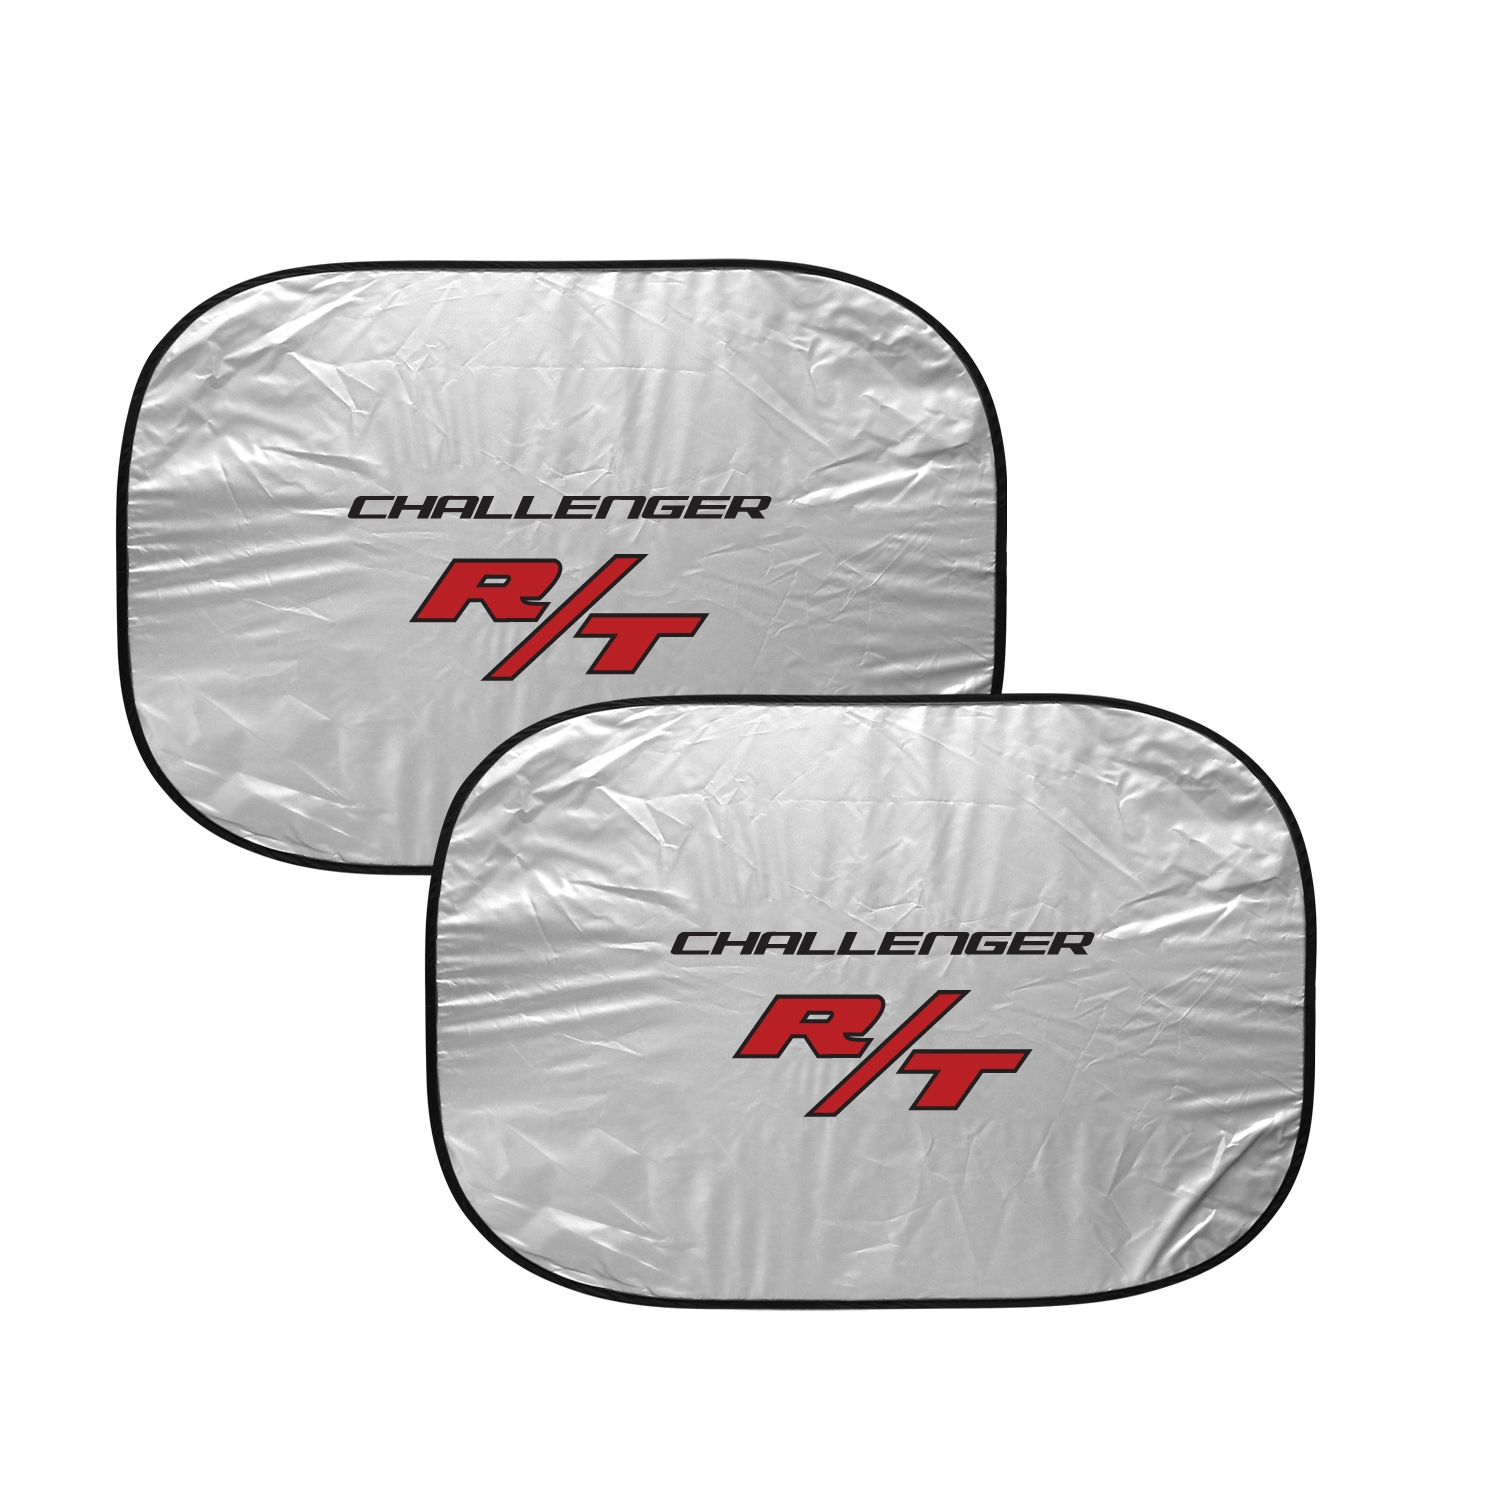 "Dodge Challenger R/T Logo Dual Panels 2-28"" W x 24"" L Easy Folding Windshield Sun Shade"